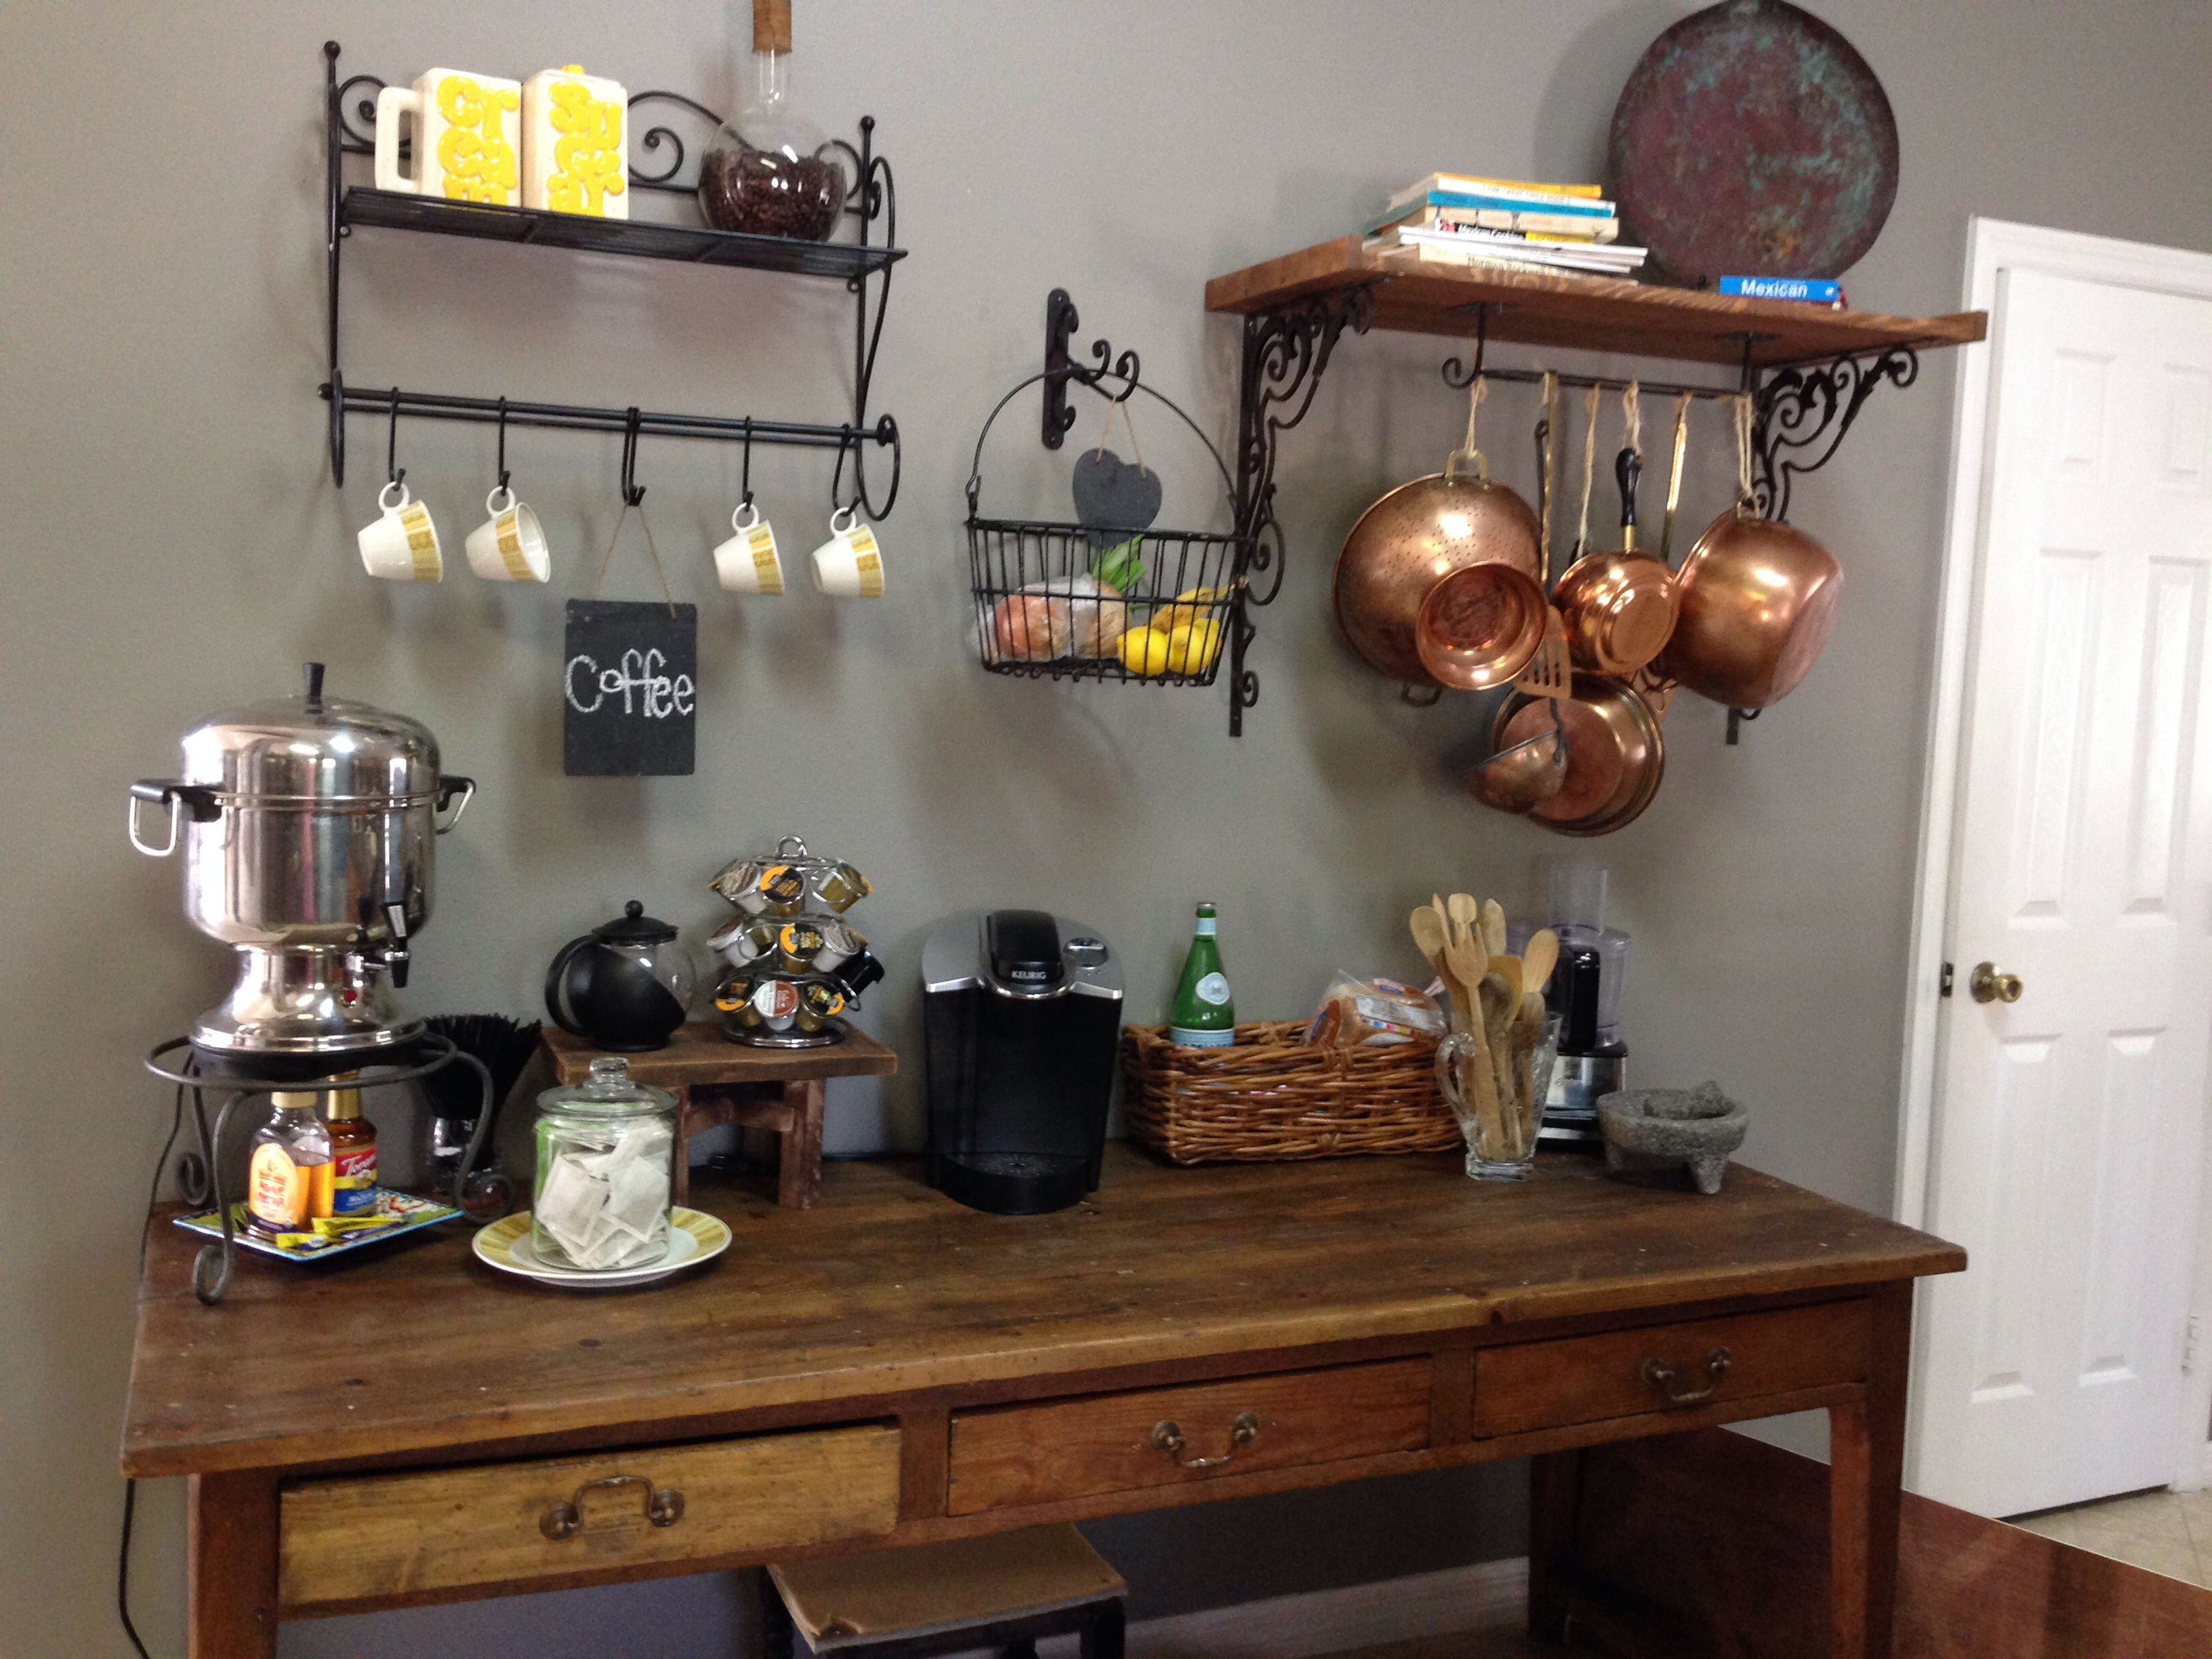 Rustic Kitchen Coffee Bar Must Have A Coffee Bar We Have Three Coffee Makers That Take Up Too Much Cof Diy Coffee Bar Table Coffee Bar Home Diy Coffee Bar